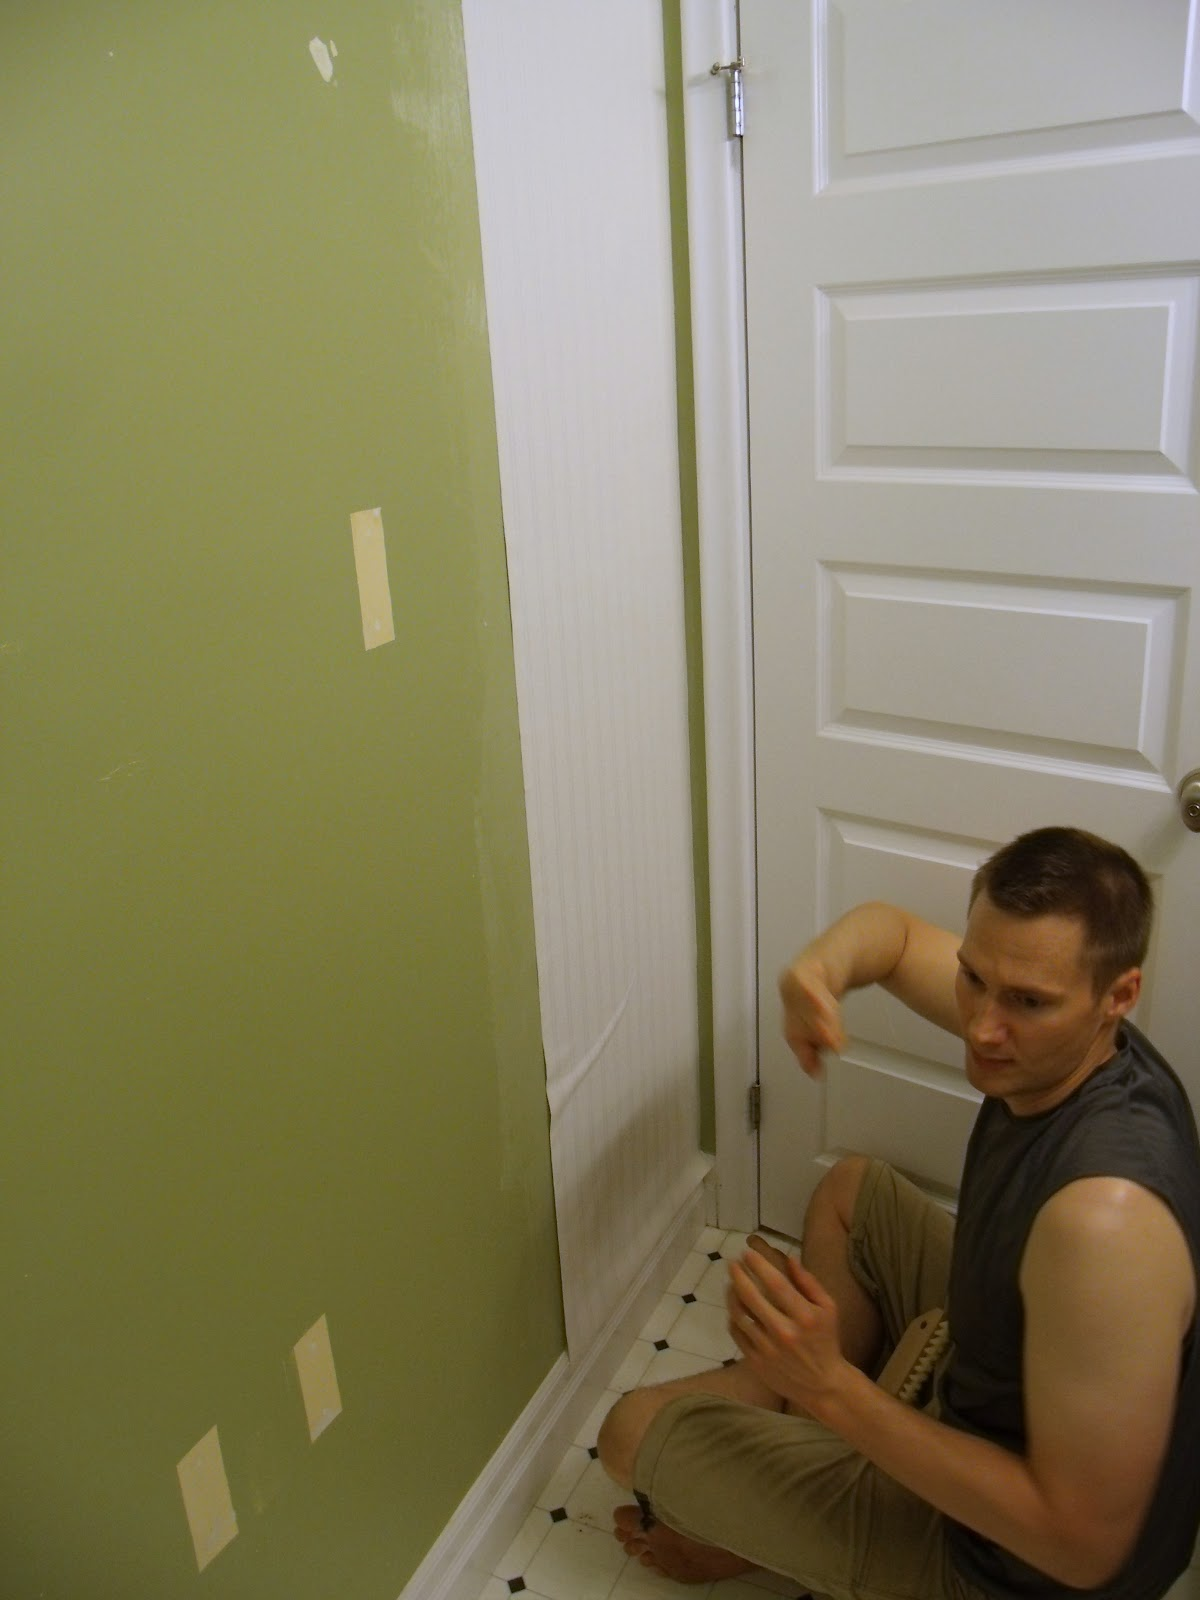 5  Get Hanging. How to Install Beadboard Paintable Wallpaper   Frugal Family Times